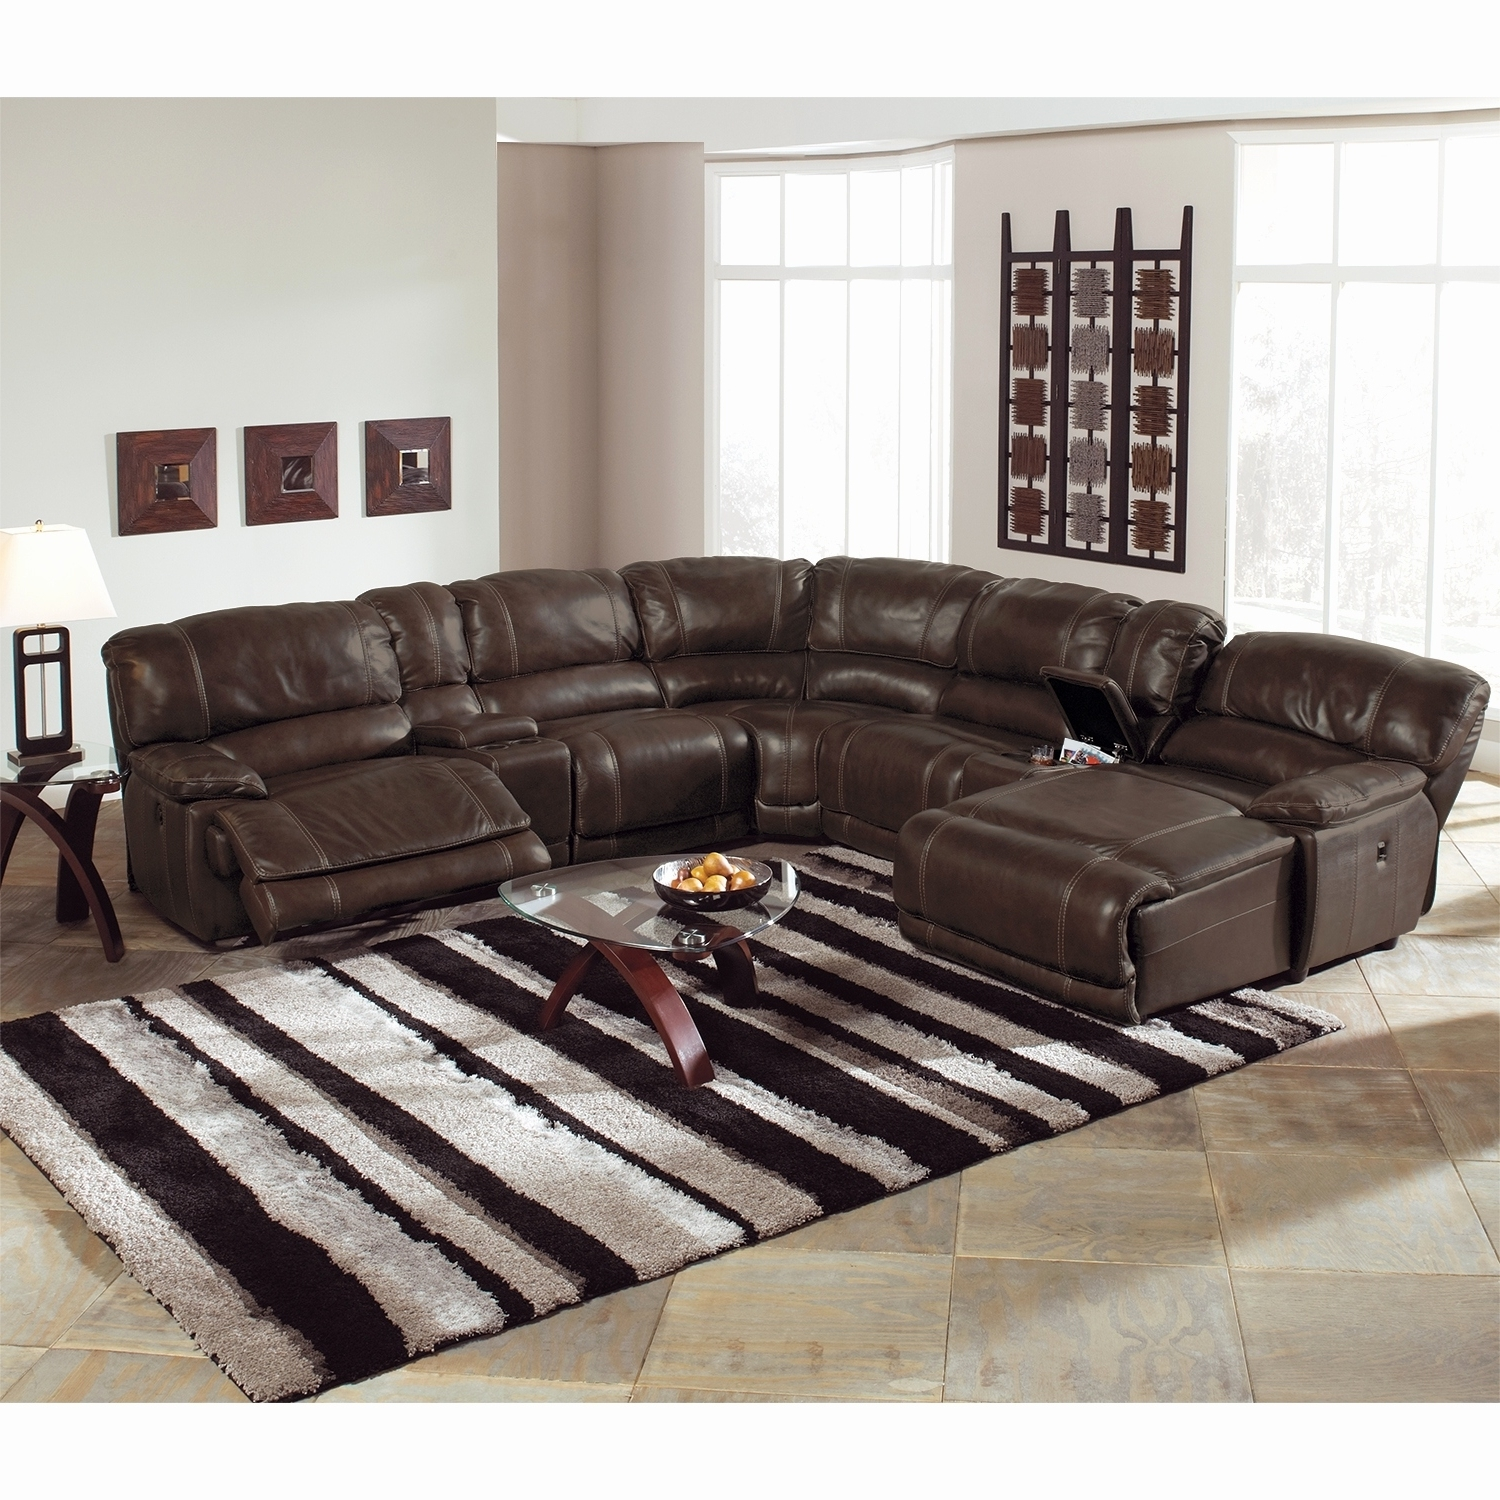 Widely Used 6 Piece Leather Sectional Sofas For Elegant Power Reclining Sectional Sofa 2018 – Couches And Sofas Ideas (View 4 of 15)